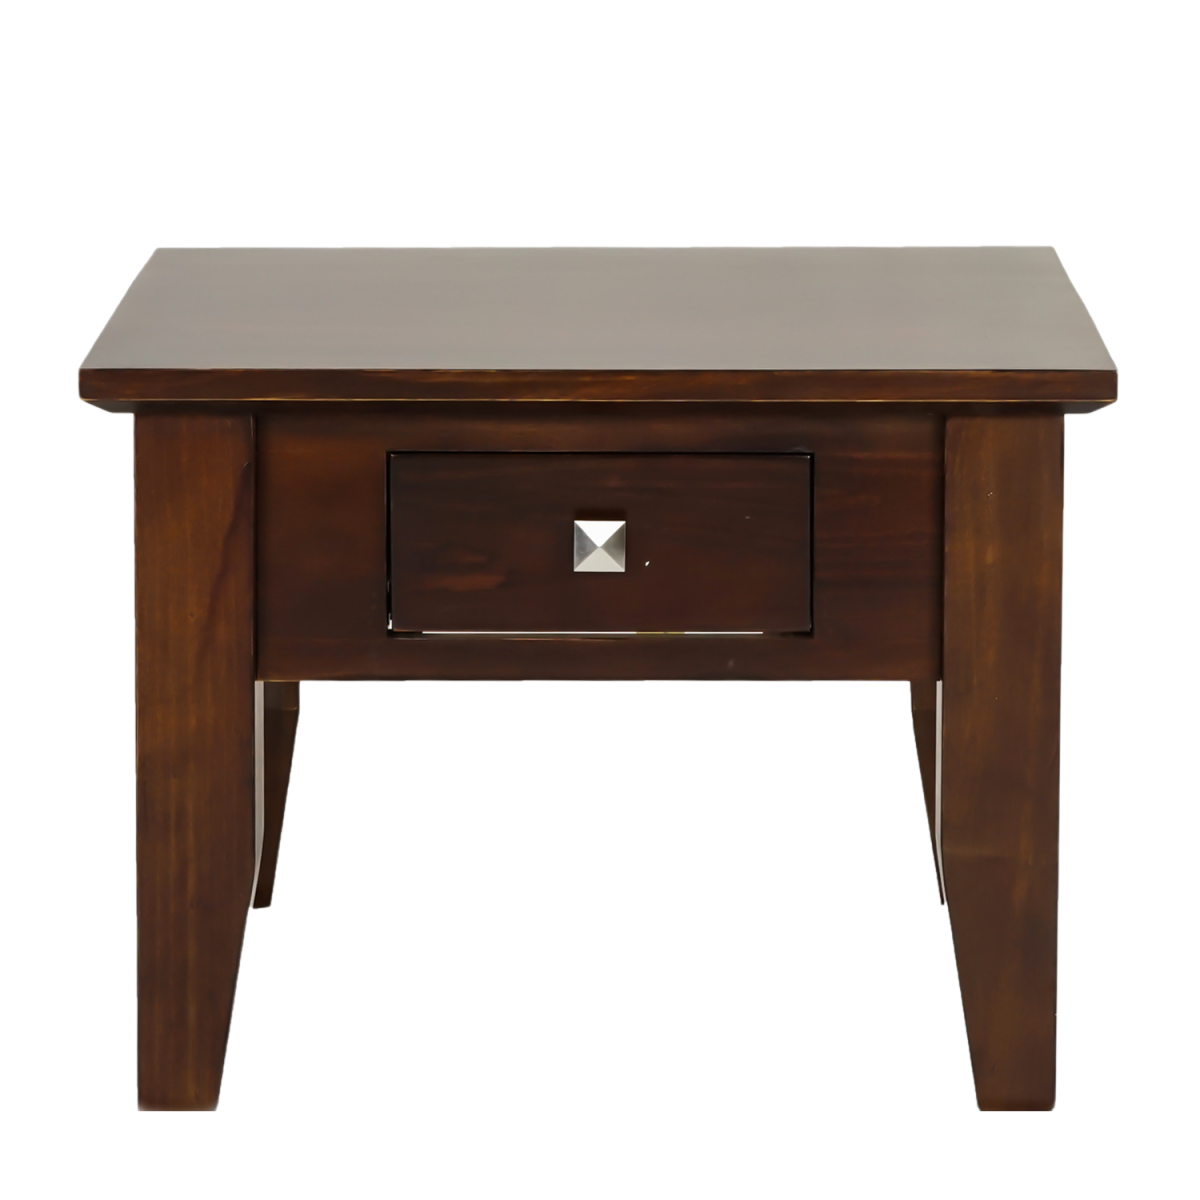 timber office furniture. TOULON LAMP TABLE TIMBER - Double Star Furniture Timber Office